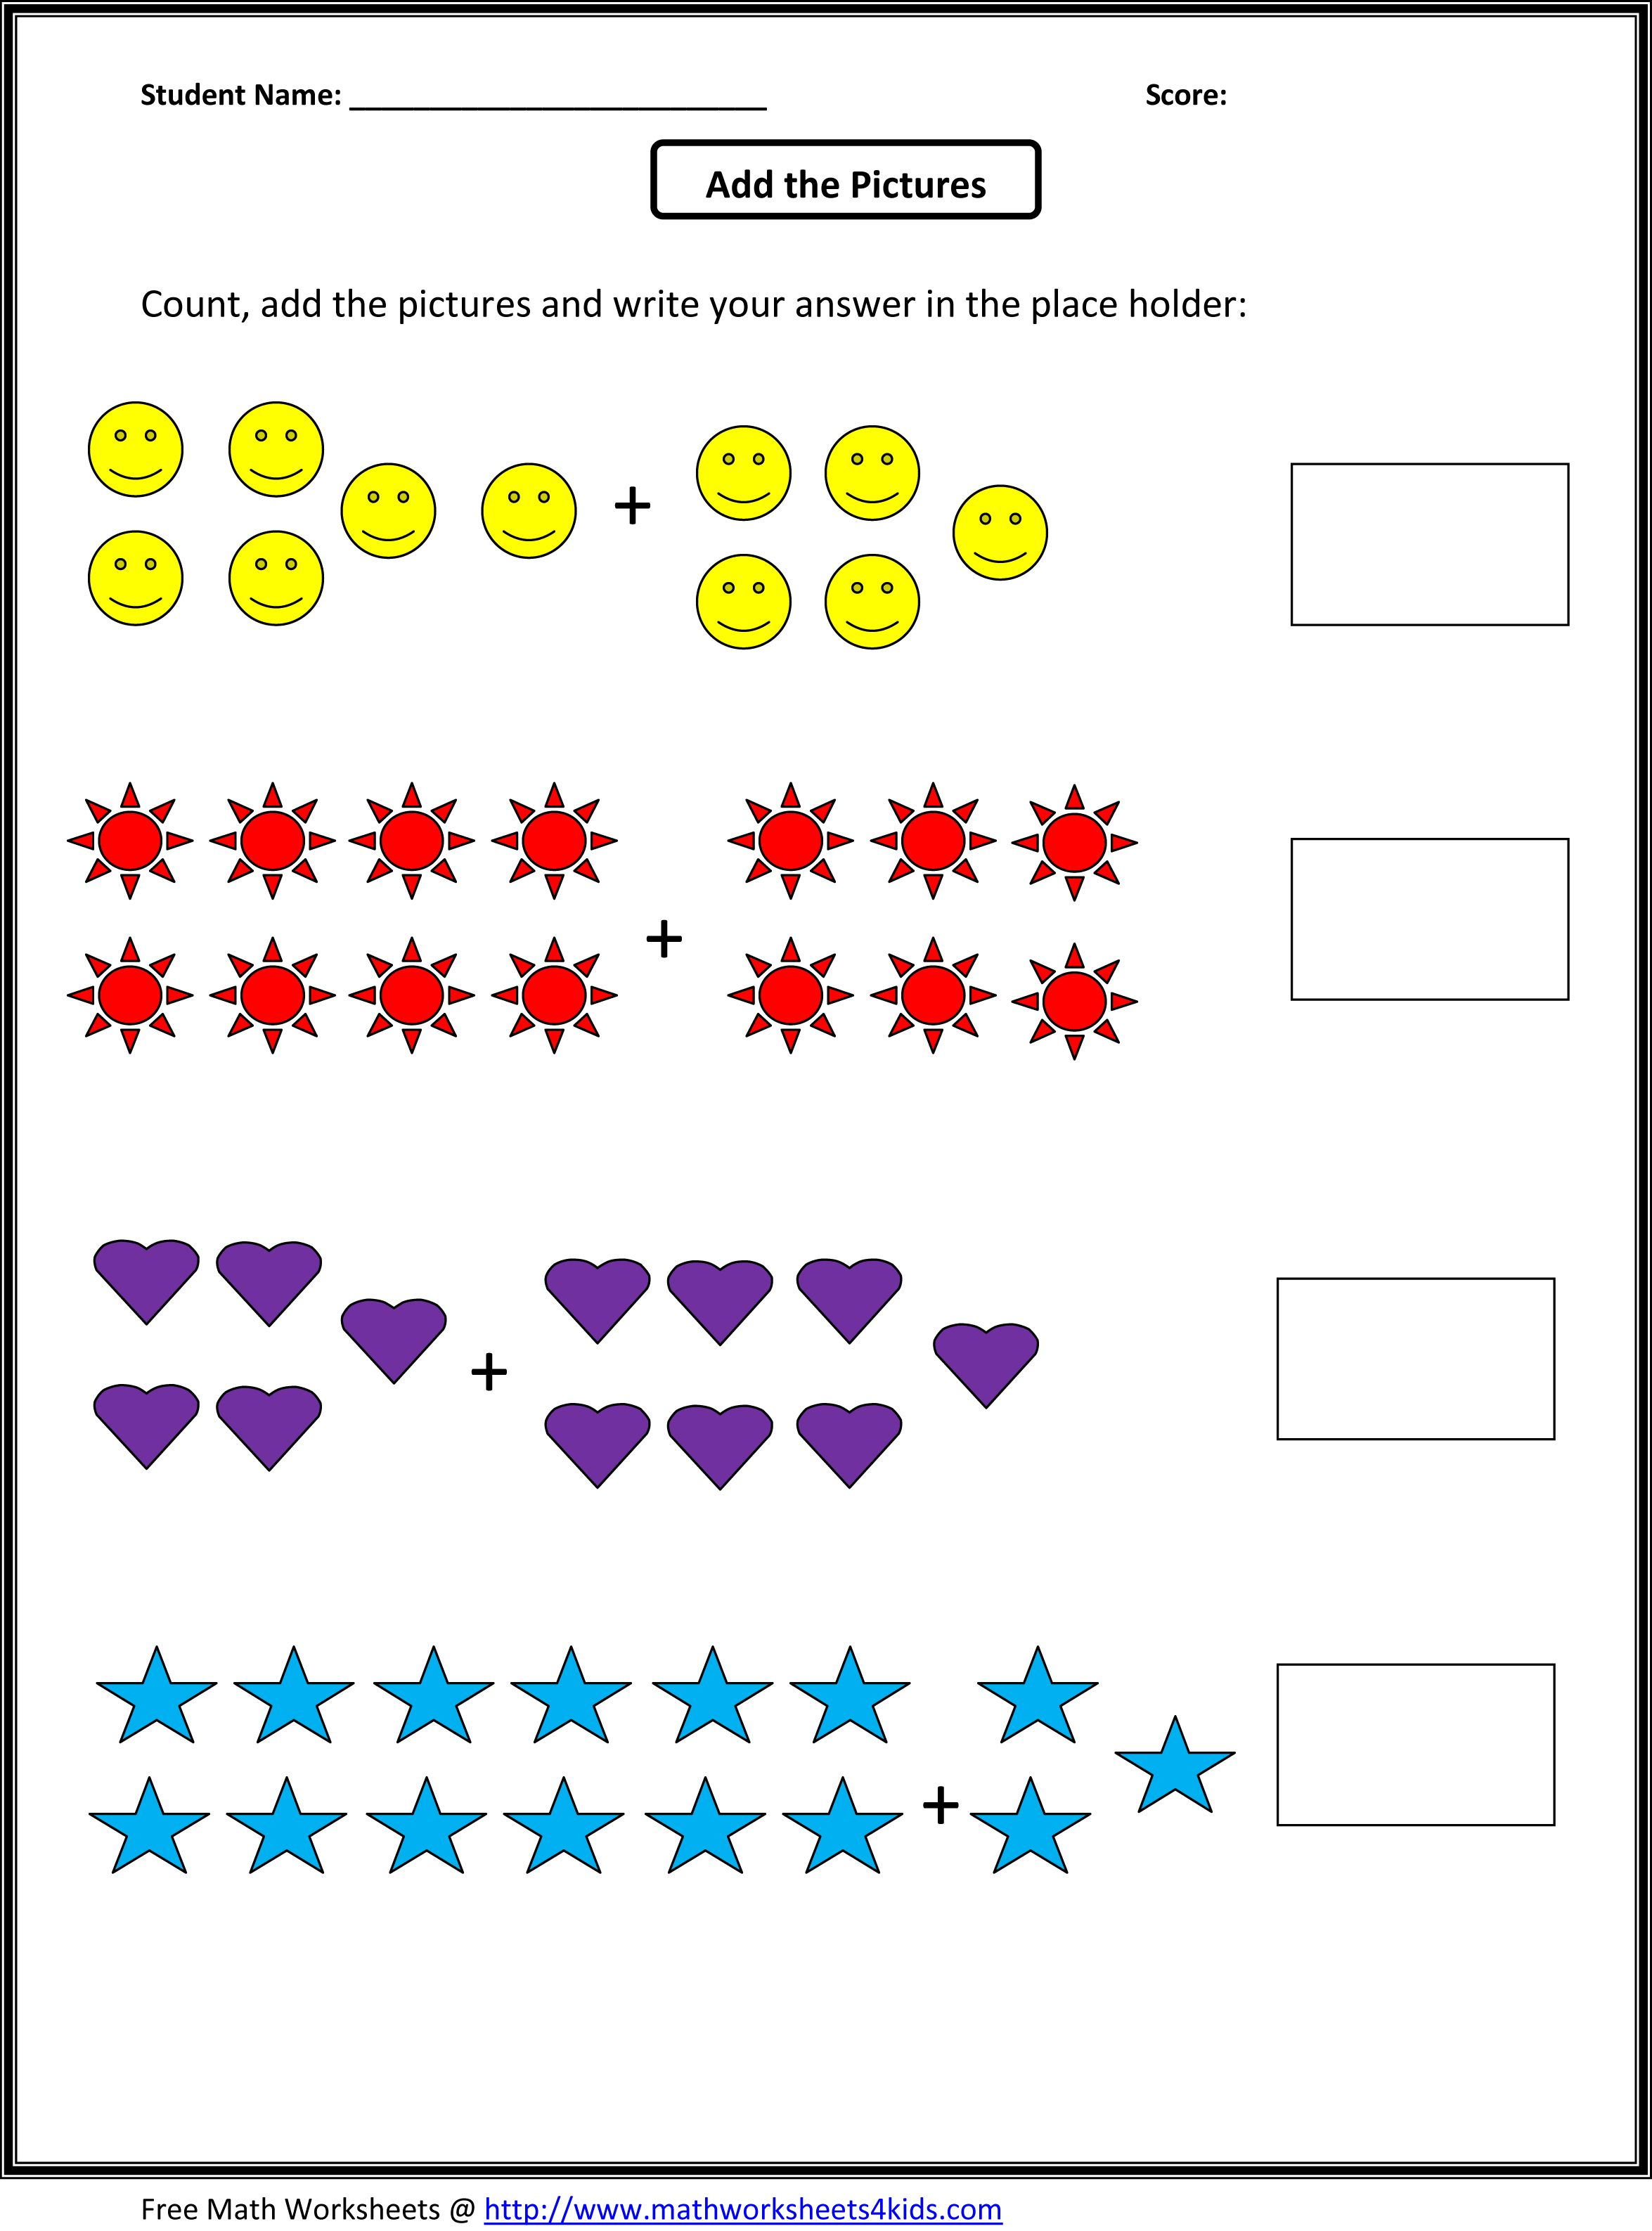 Simple Addition Worksheets For Educations Simple Addition